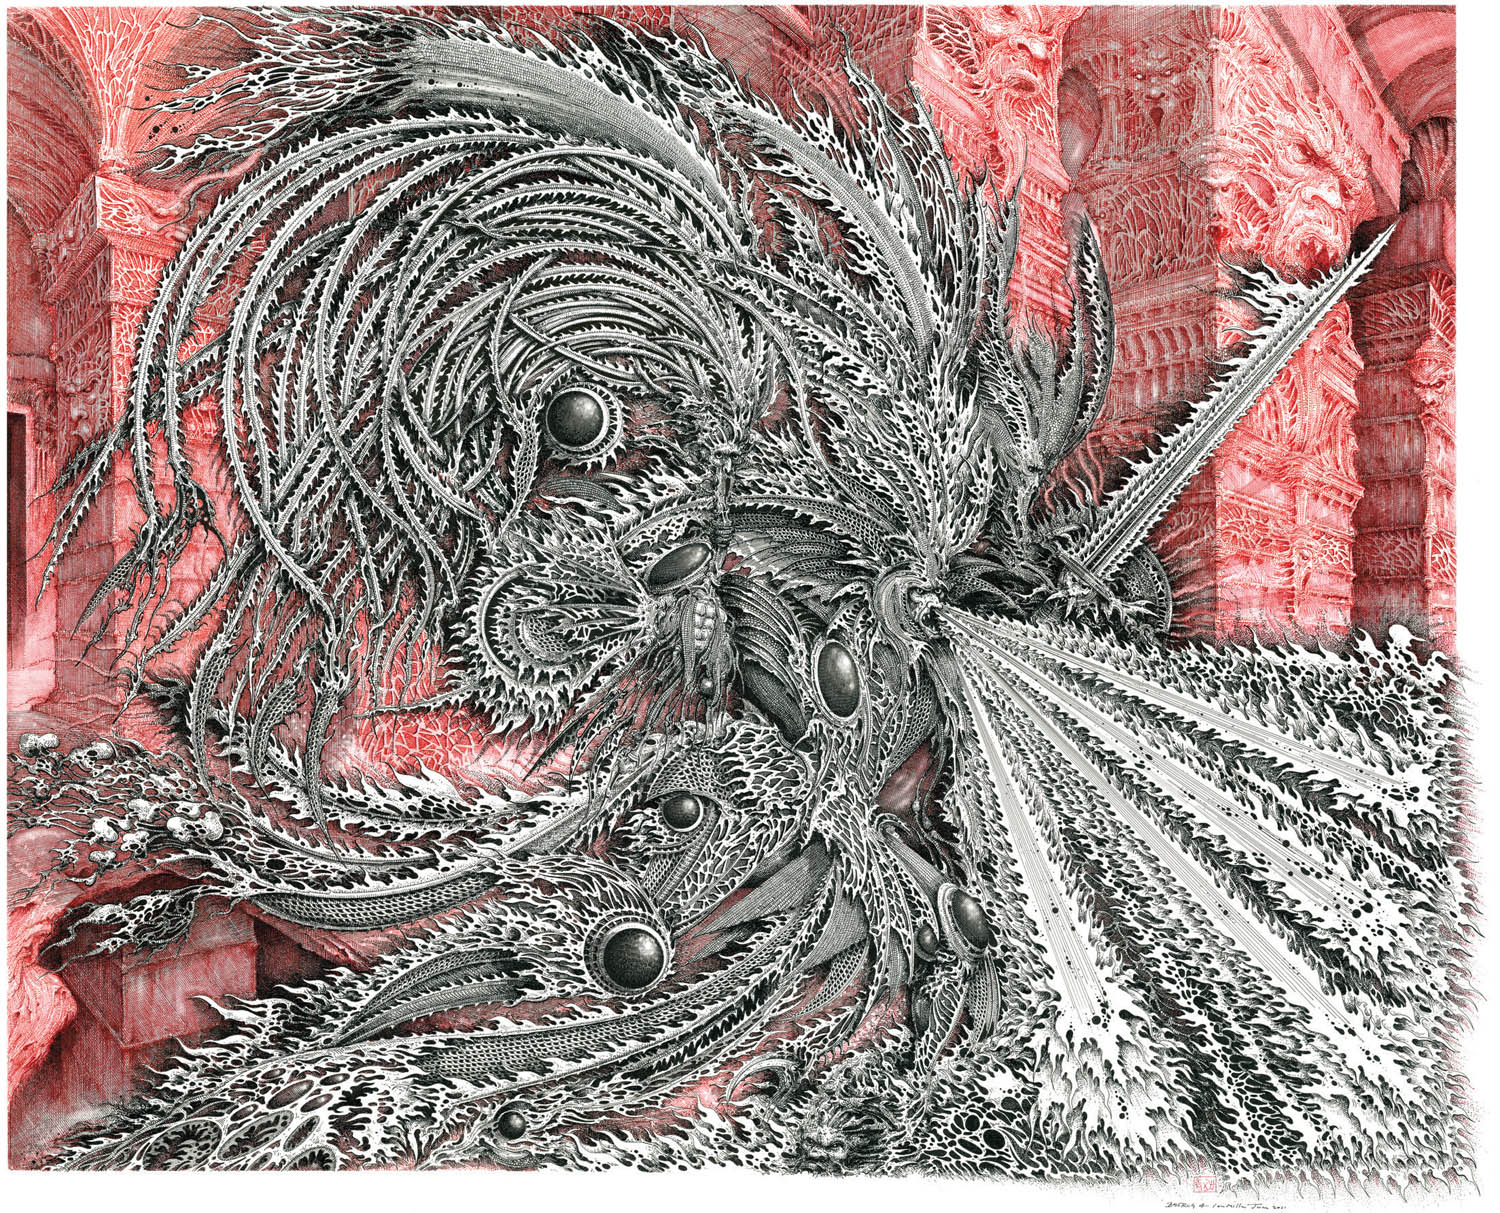 Fish Fiends And Fantasy The Gothic Art Of Ian Miller The Verge